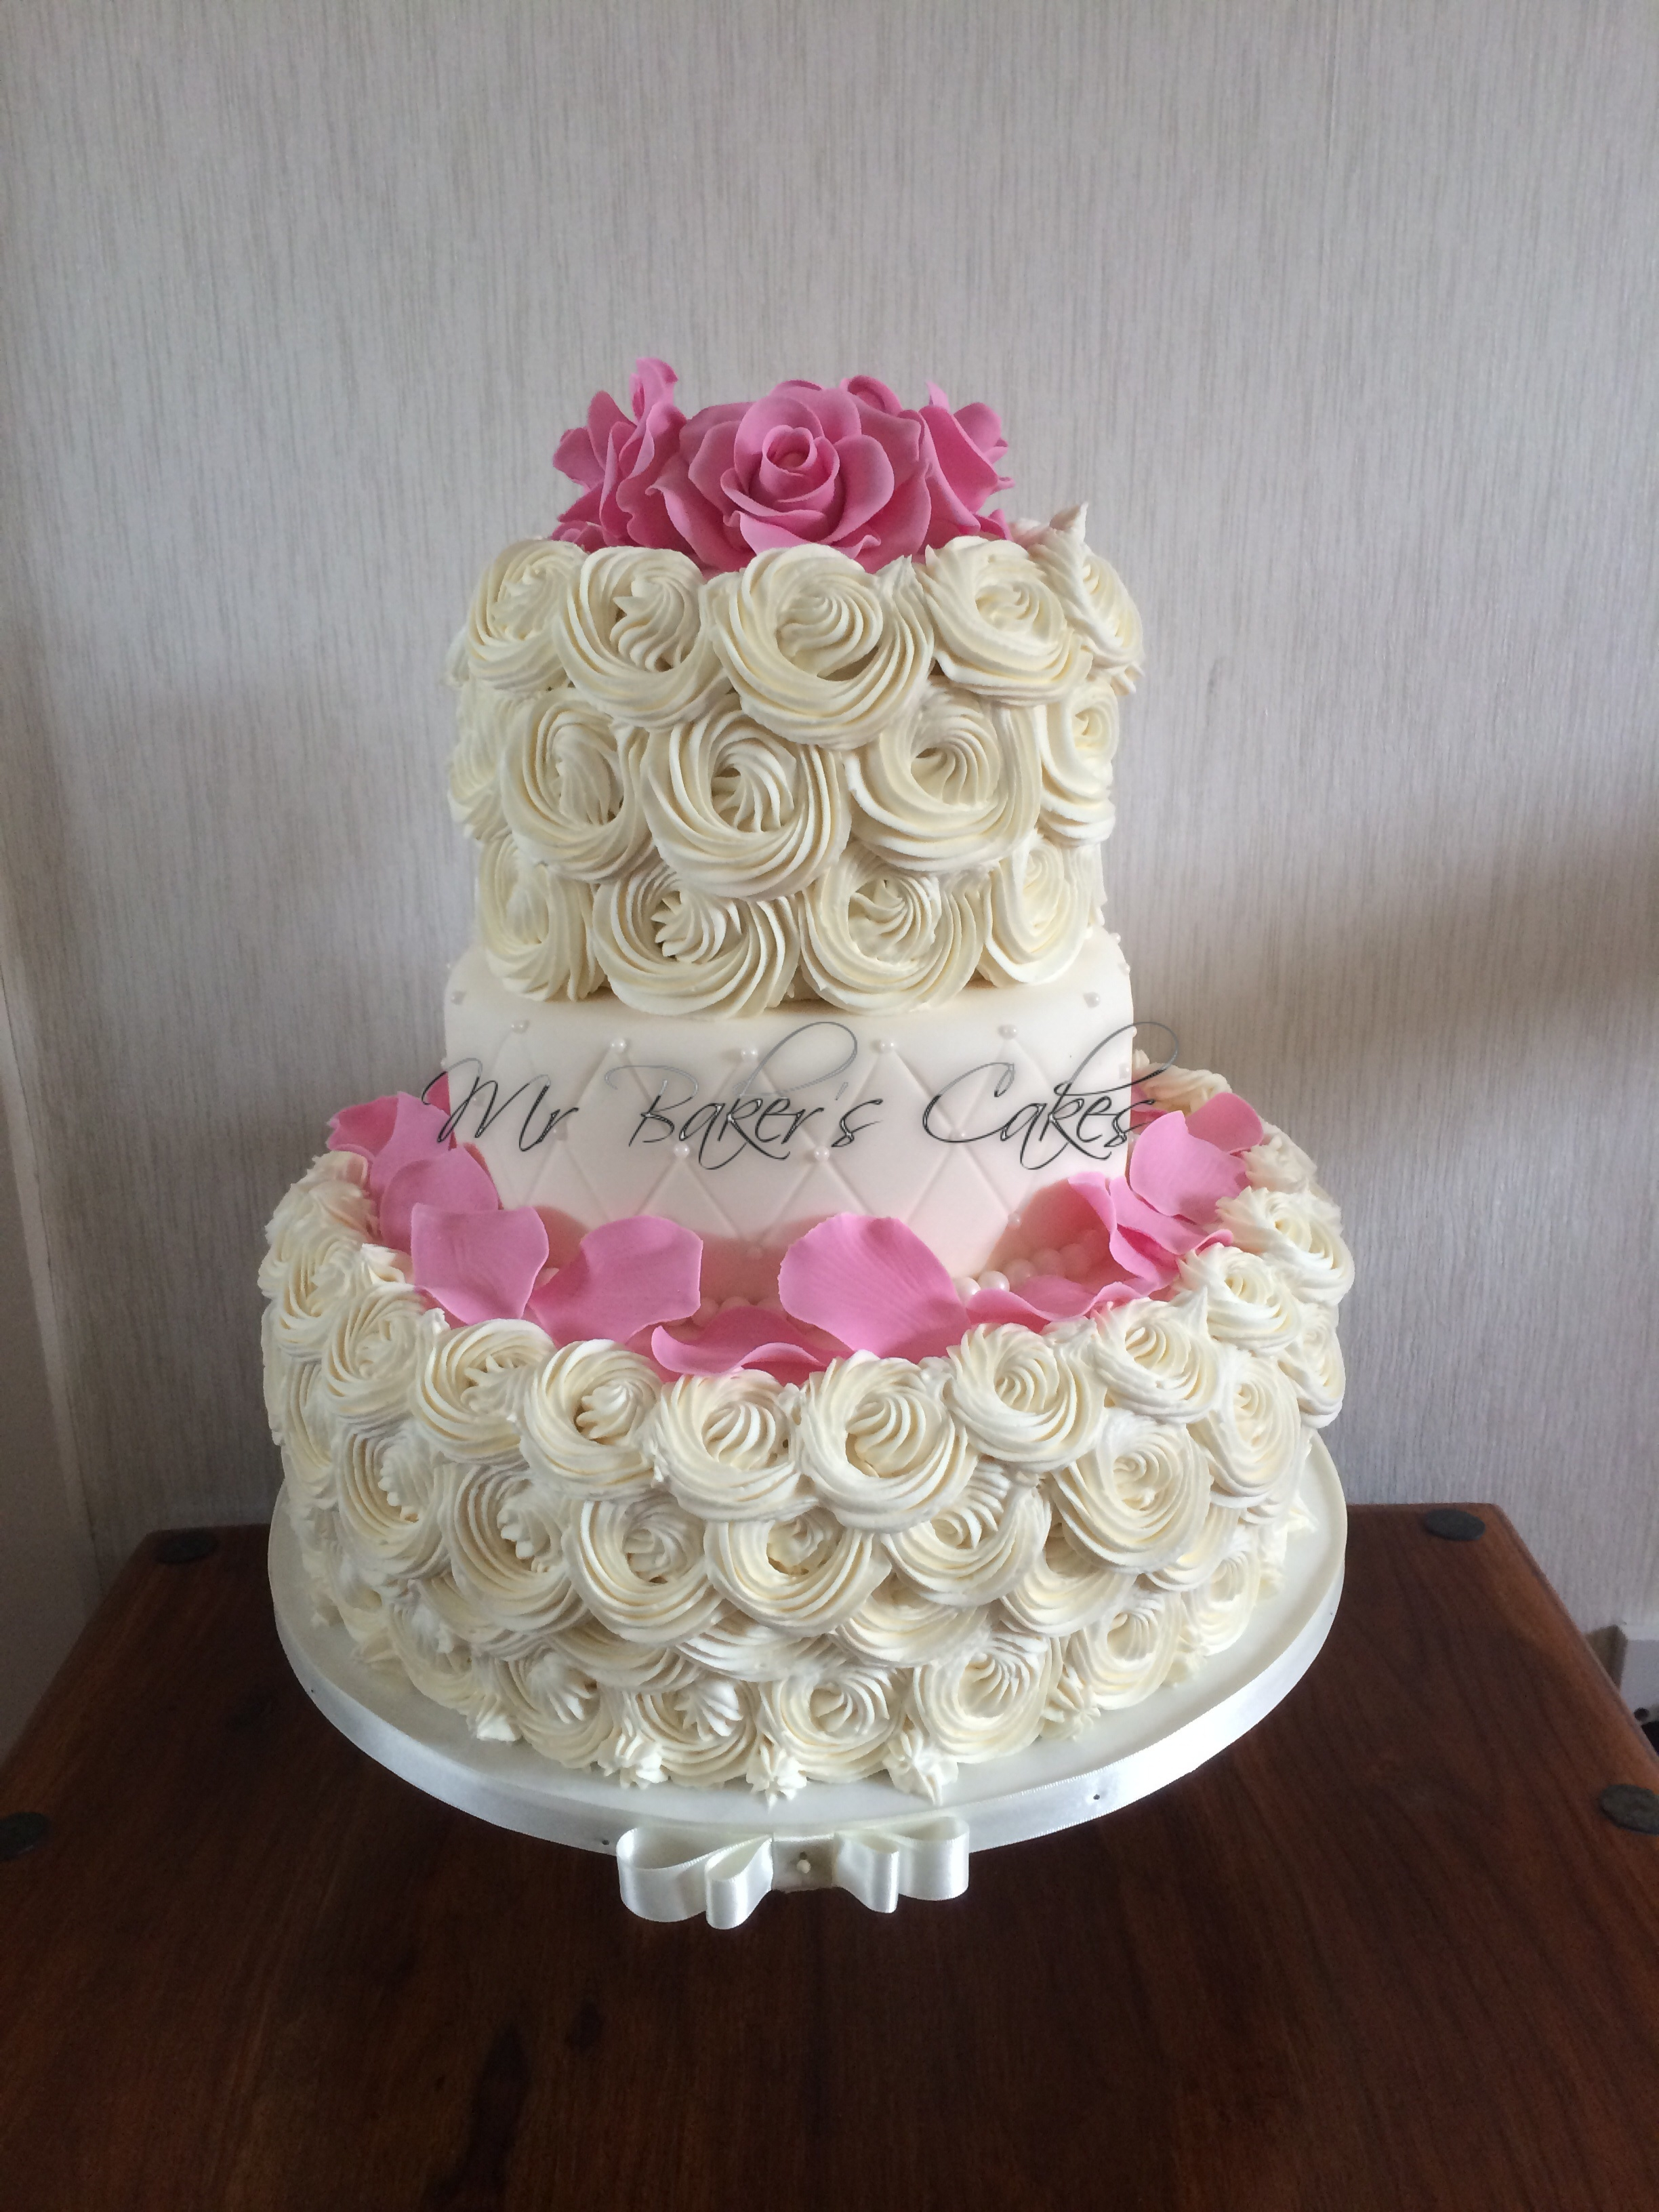 Vanilla Sponge Buttercream And Raspberry Jam Middle Tier Is Quilted Fondant With Edible Pearl Dragees Border